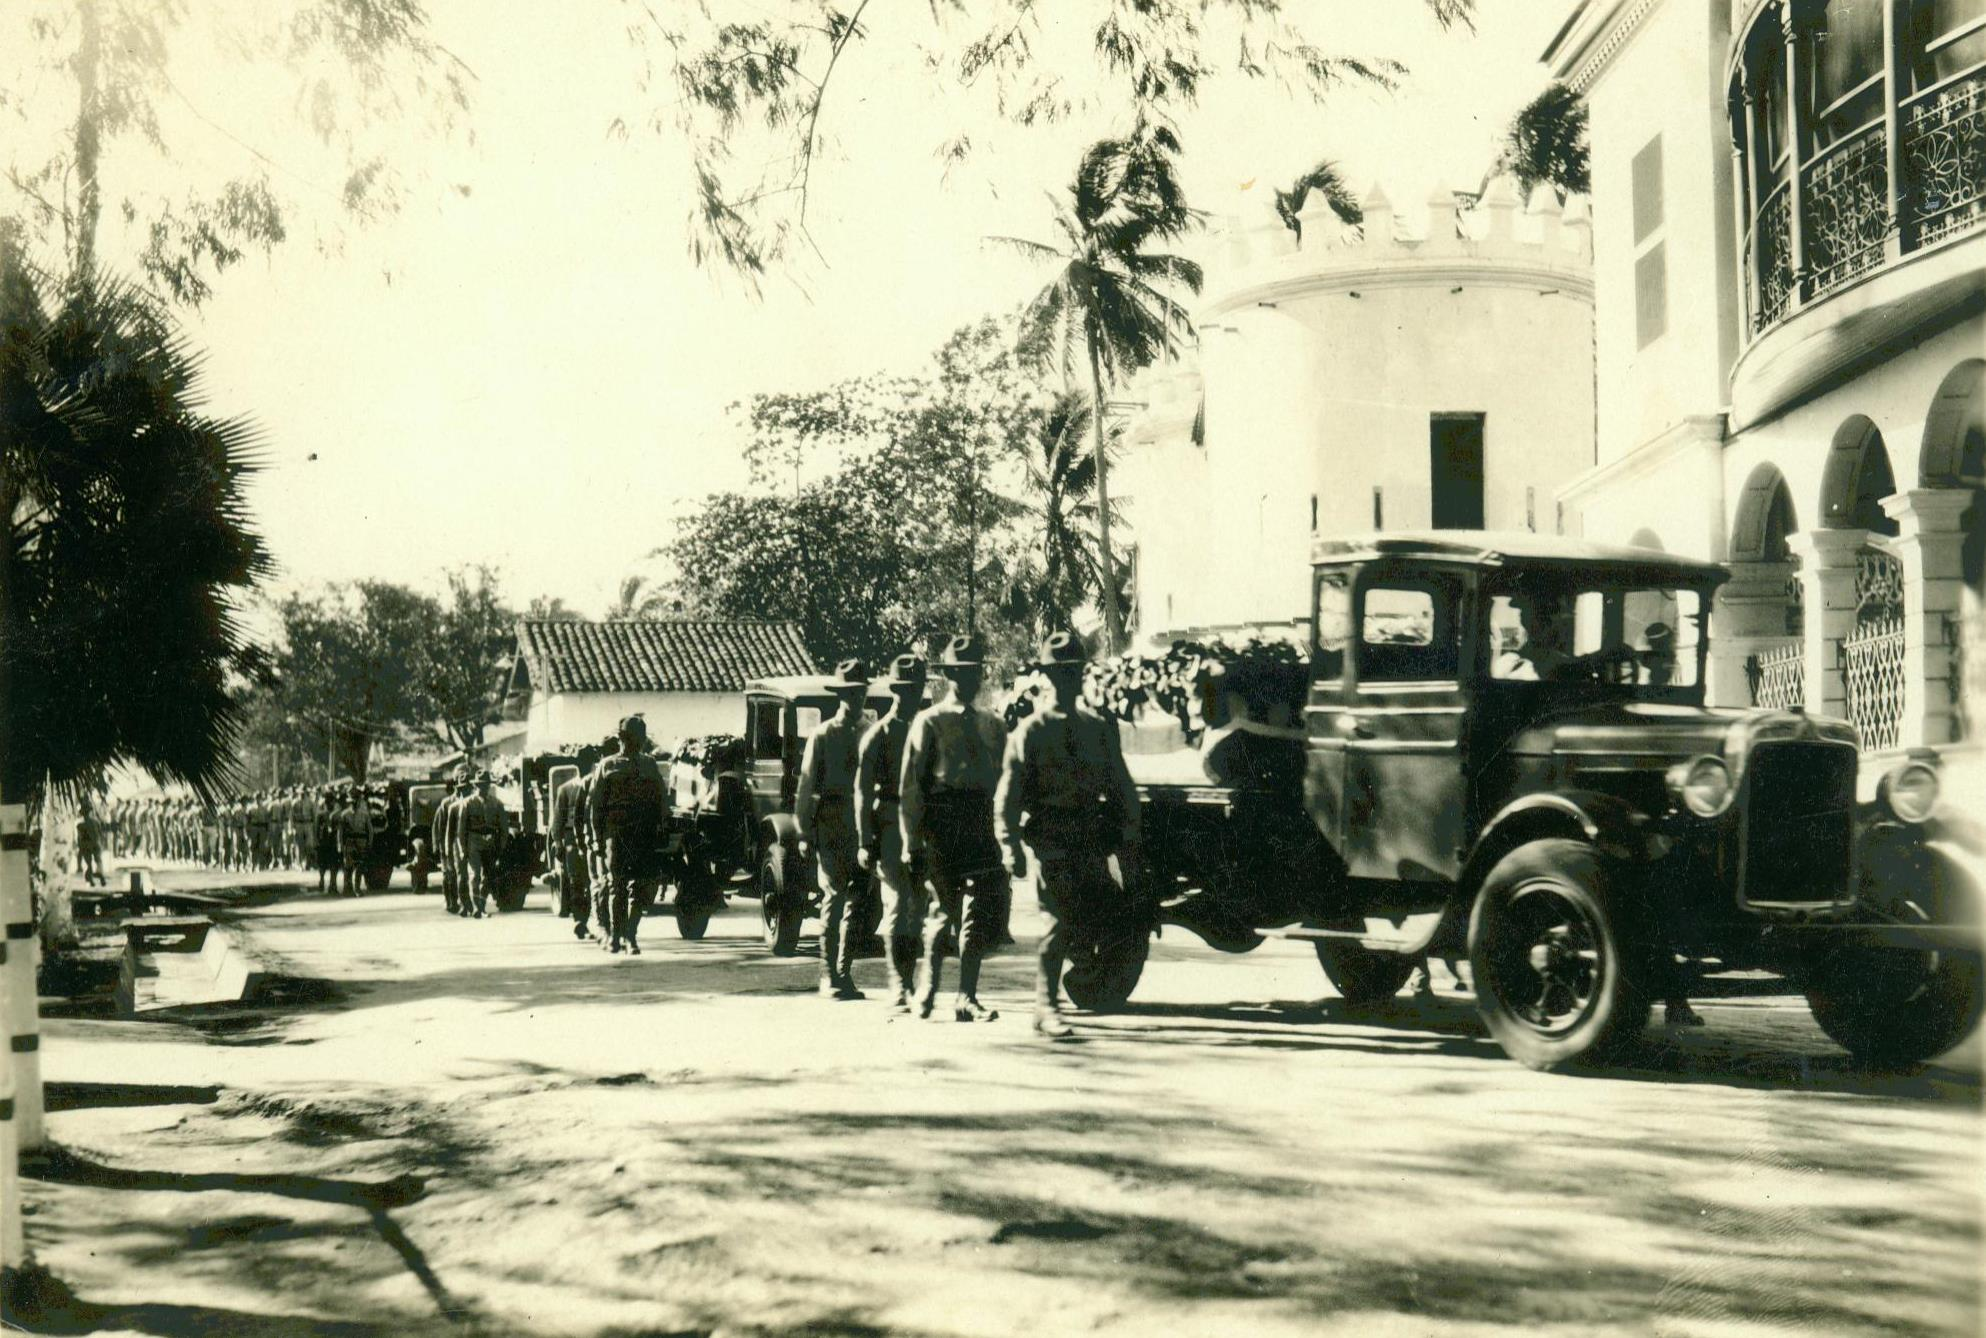 central states of usa with File Funeral Cortege  Managua  Nicaragua  8 January 1931  17692234525 on File Church of St  Stephen  St  Stephen  Minnesota  1 additionally USACcleaverK likewise Ostrom Facts in addition File WATER COOLING TOWERS OF THE JOHN AMOS POWER PLANT LOOM OVER POCA  WV  HOME THAT IS ON THE OTHER SIDE OF THE KANAWHA      NARA   551152 furthermore Westminster Presbyterian Church Minneapolis 2.